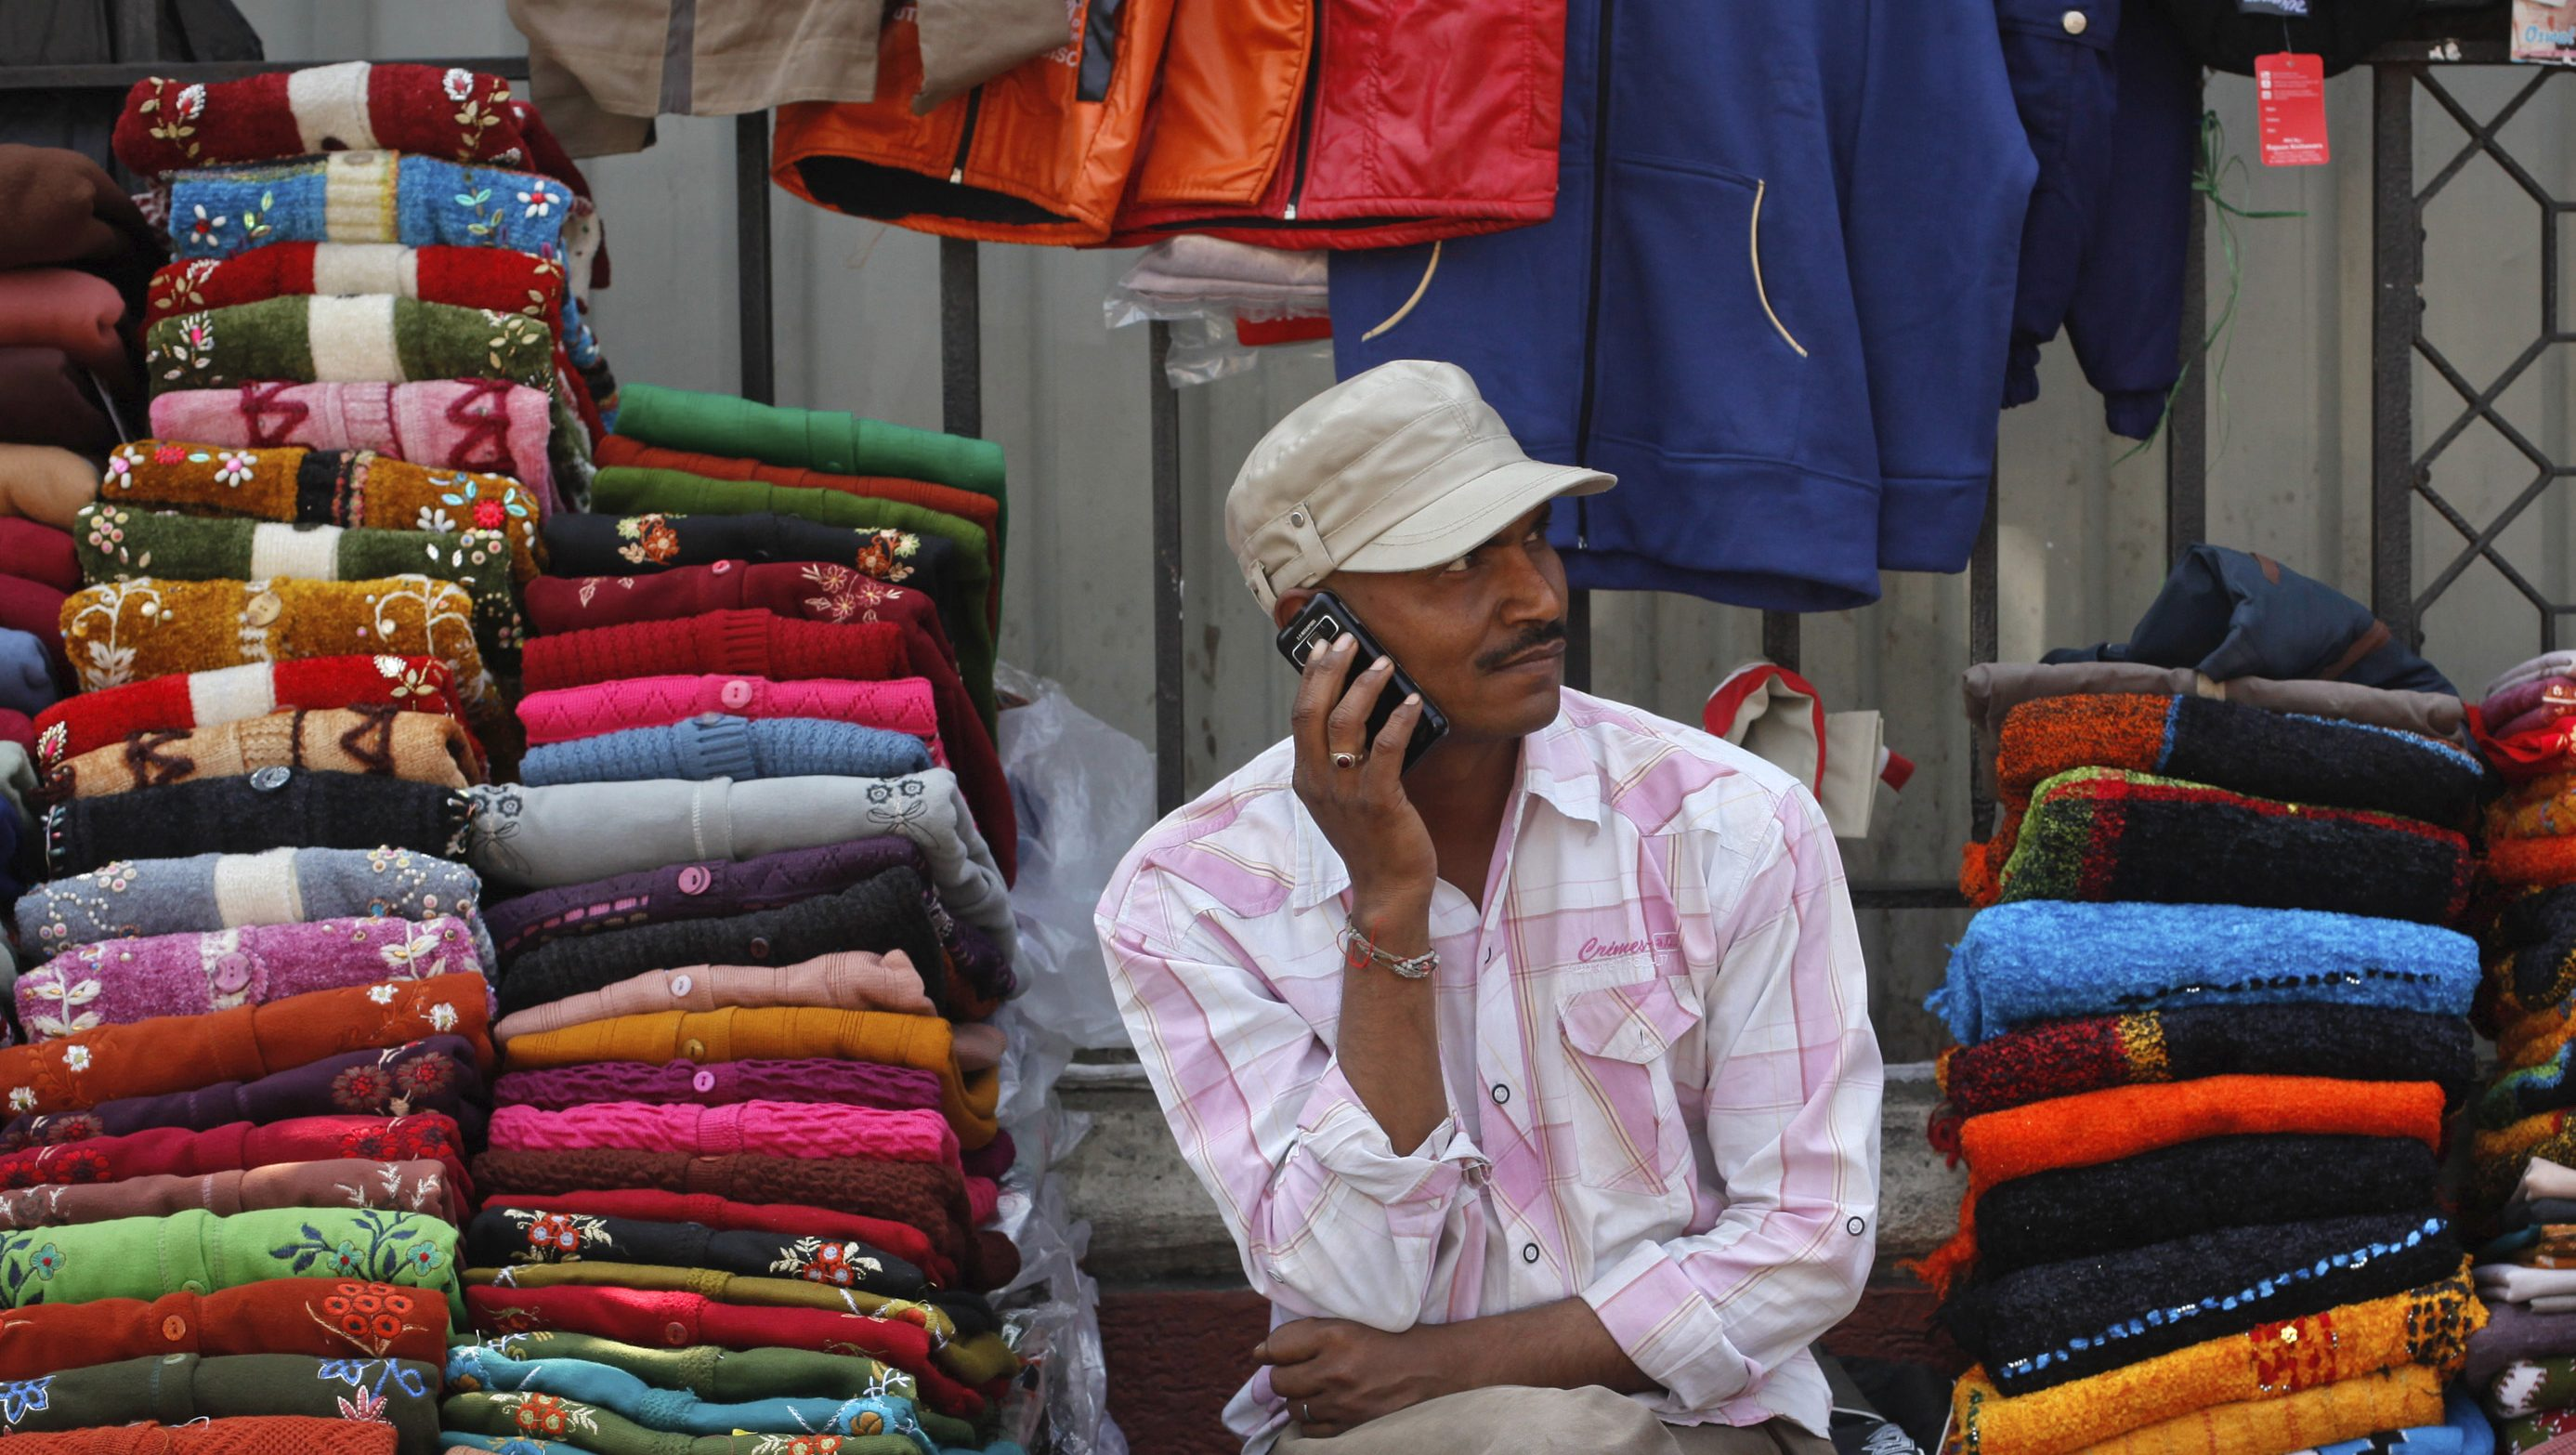 A vendor speaks on his mobile phone as he waits for customers at his roadside shop selling clothes in Mumbai February 2, 2012. India's Supreme Court on Thursday revoked all 122 telecoms licences issued under a scandal-tainted 2008 sale, a fresh embarrassment for the government and plunging the mobile network market of Asia's third-largest economy into uncertainty. REUTERS/Danish Siddiqui (INDIA - Tags: BUSINESS TELECOMS) - GM1E8221FO701